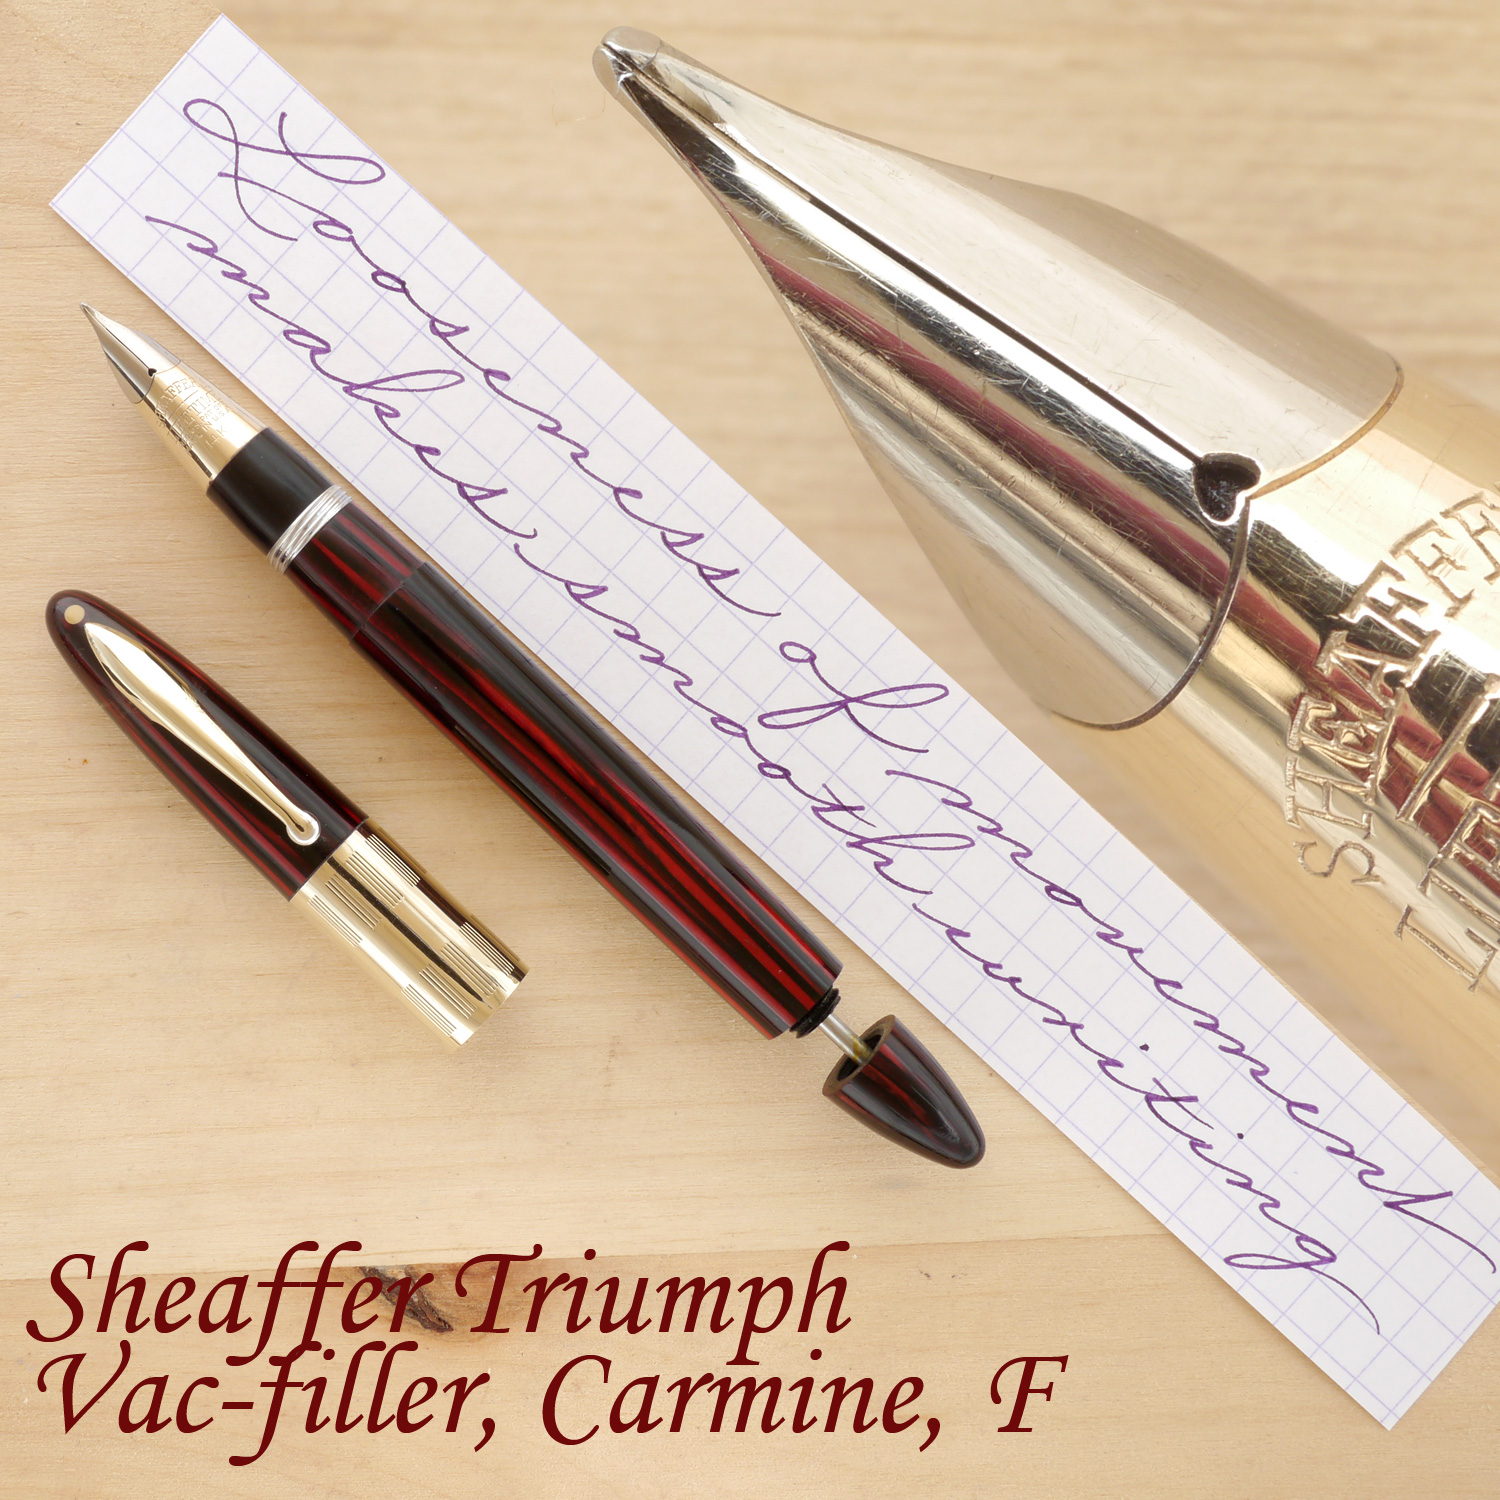 Sheaffer Triumph Fountain Pen, Carmine, F, uncapped, with the plunger partially extended